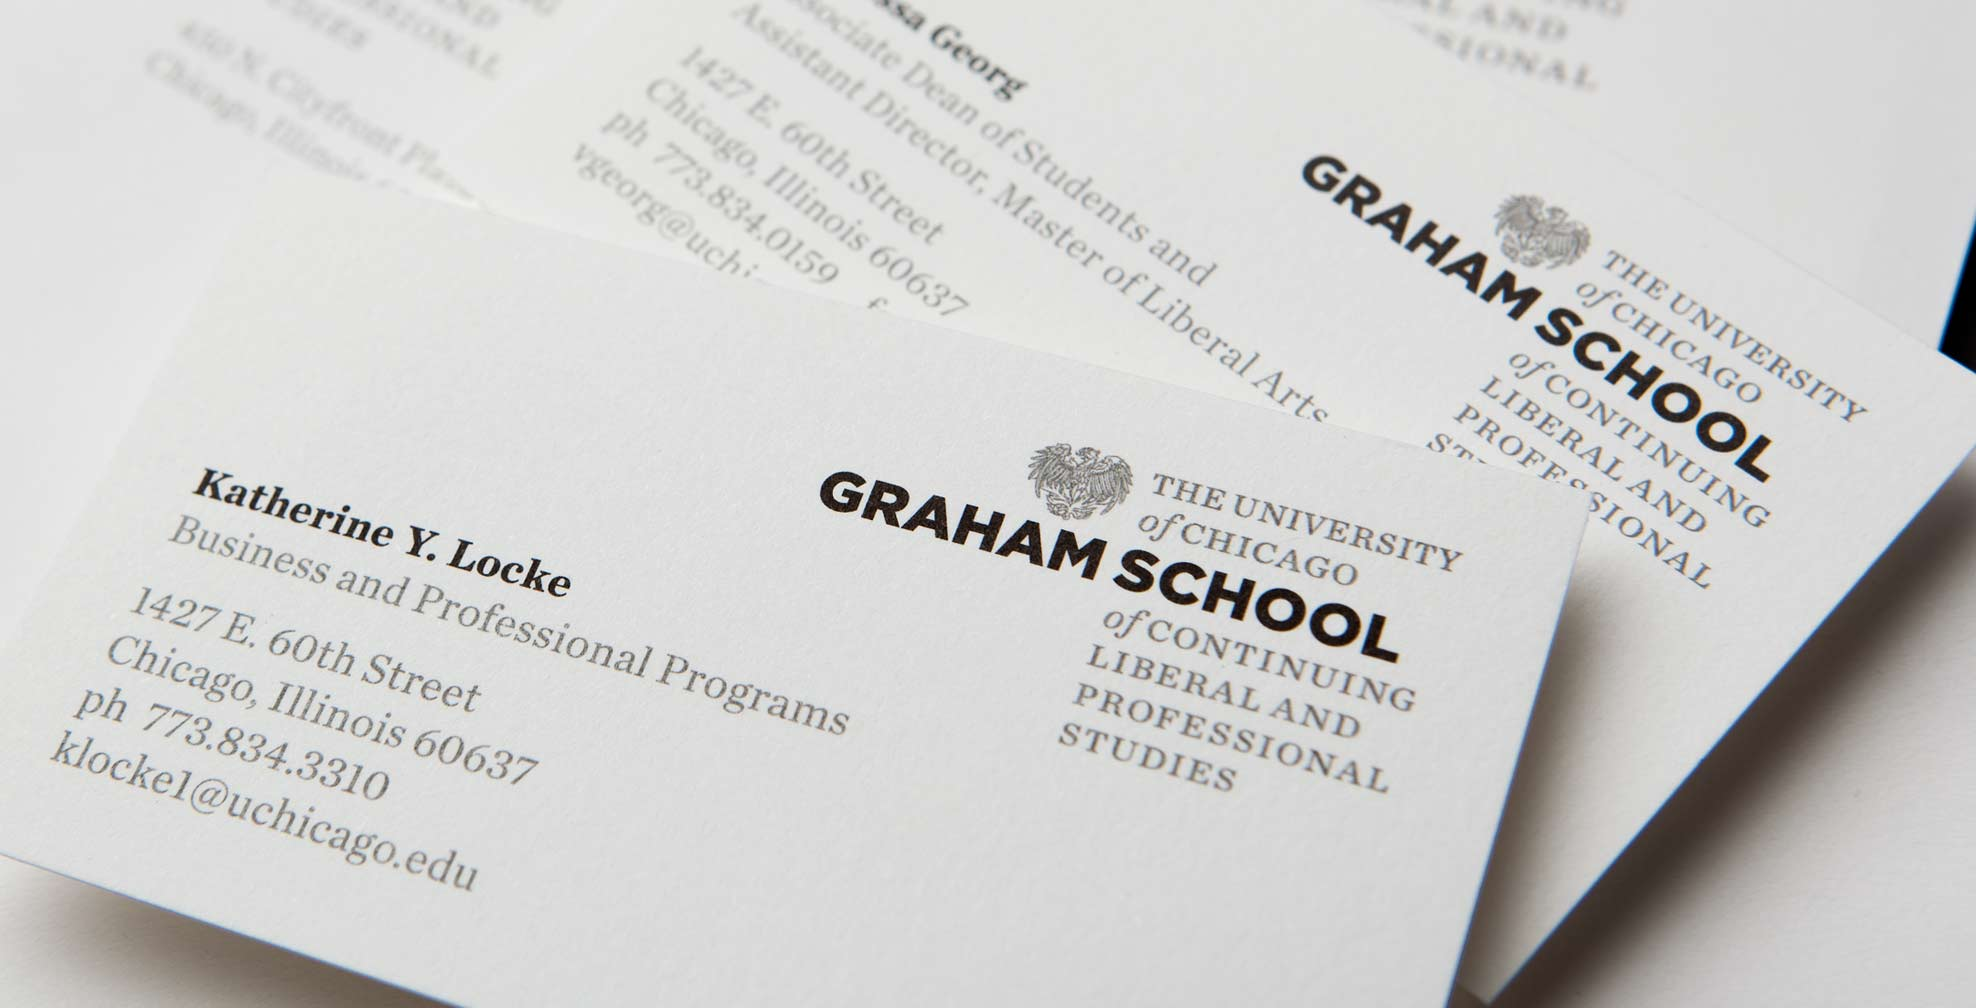 University of Chicago Graham School - Crosby Associates - Chicago